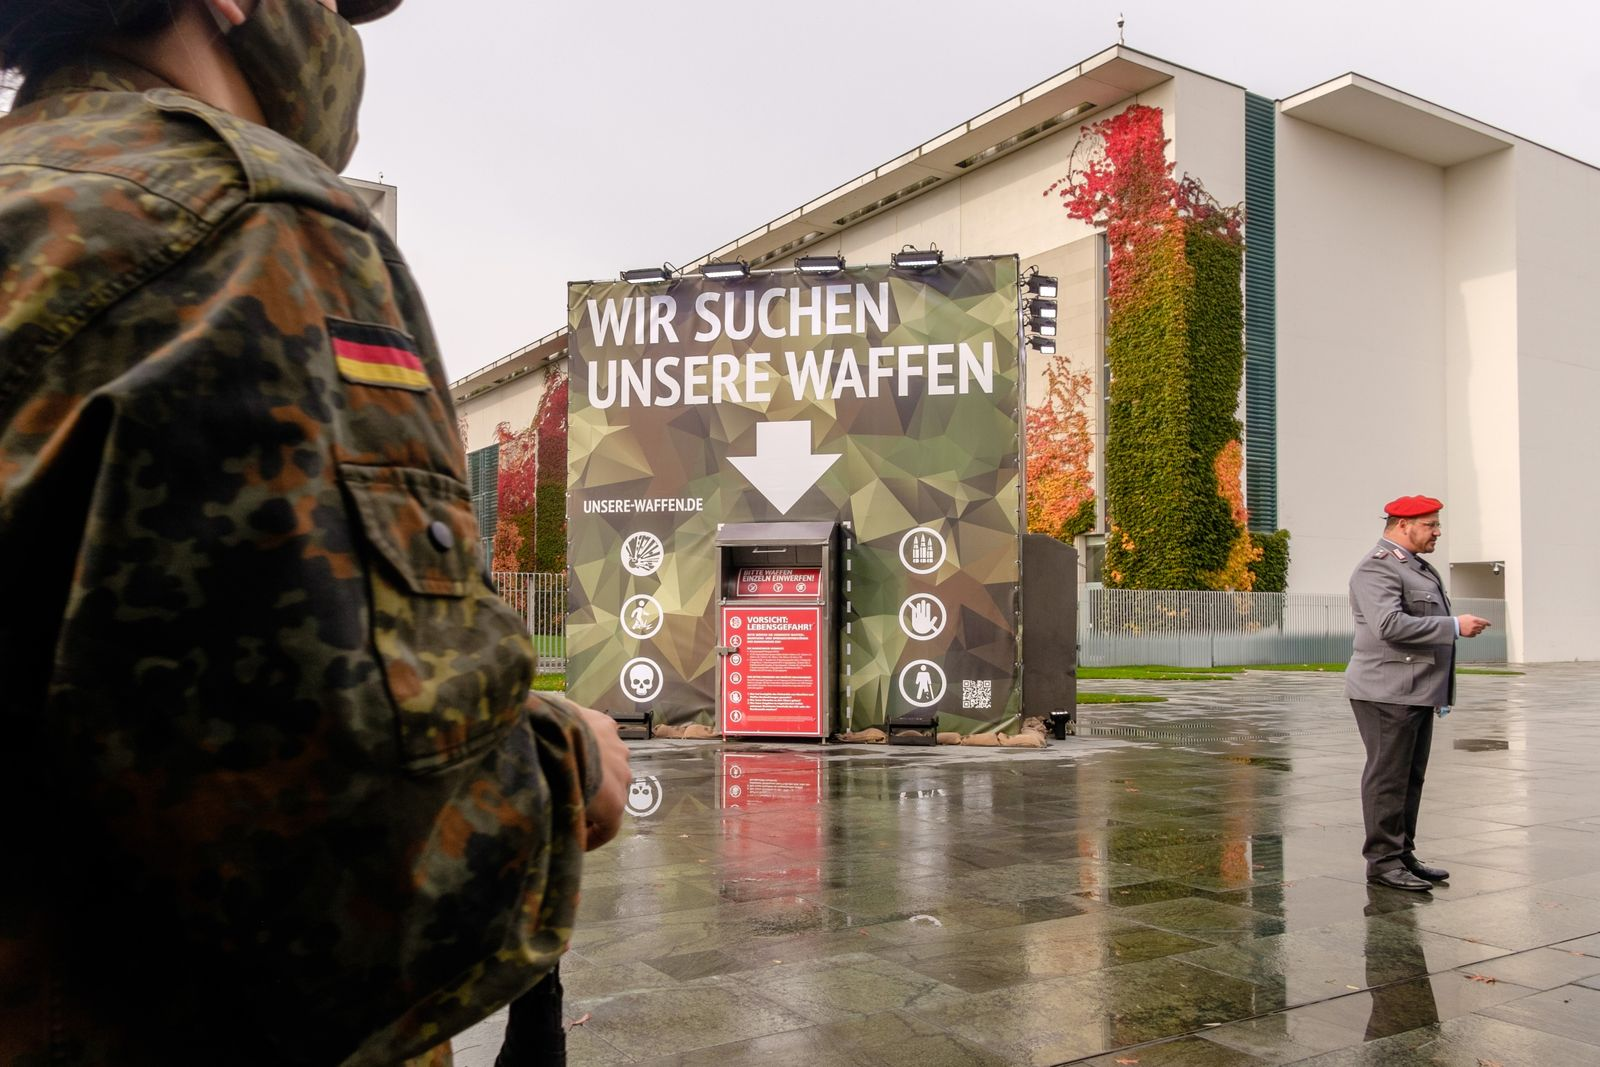 Art action Wo sind unsere Waffen of Center for Political Beauty